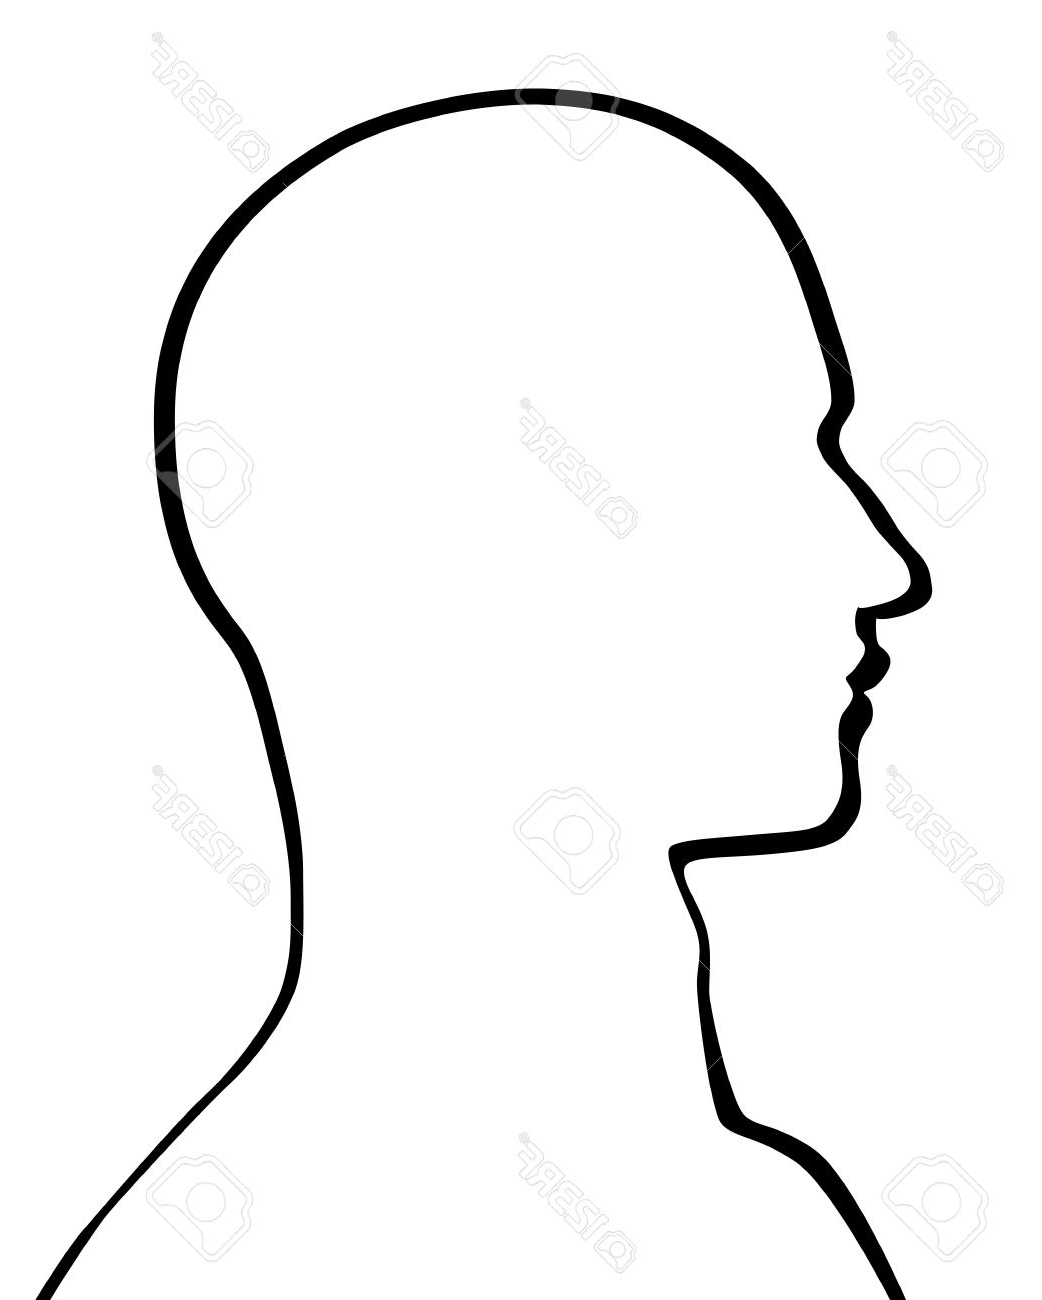 1042x1300 Drawing Face Profile Outline Human Head Royalty Free Cliparts